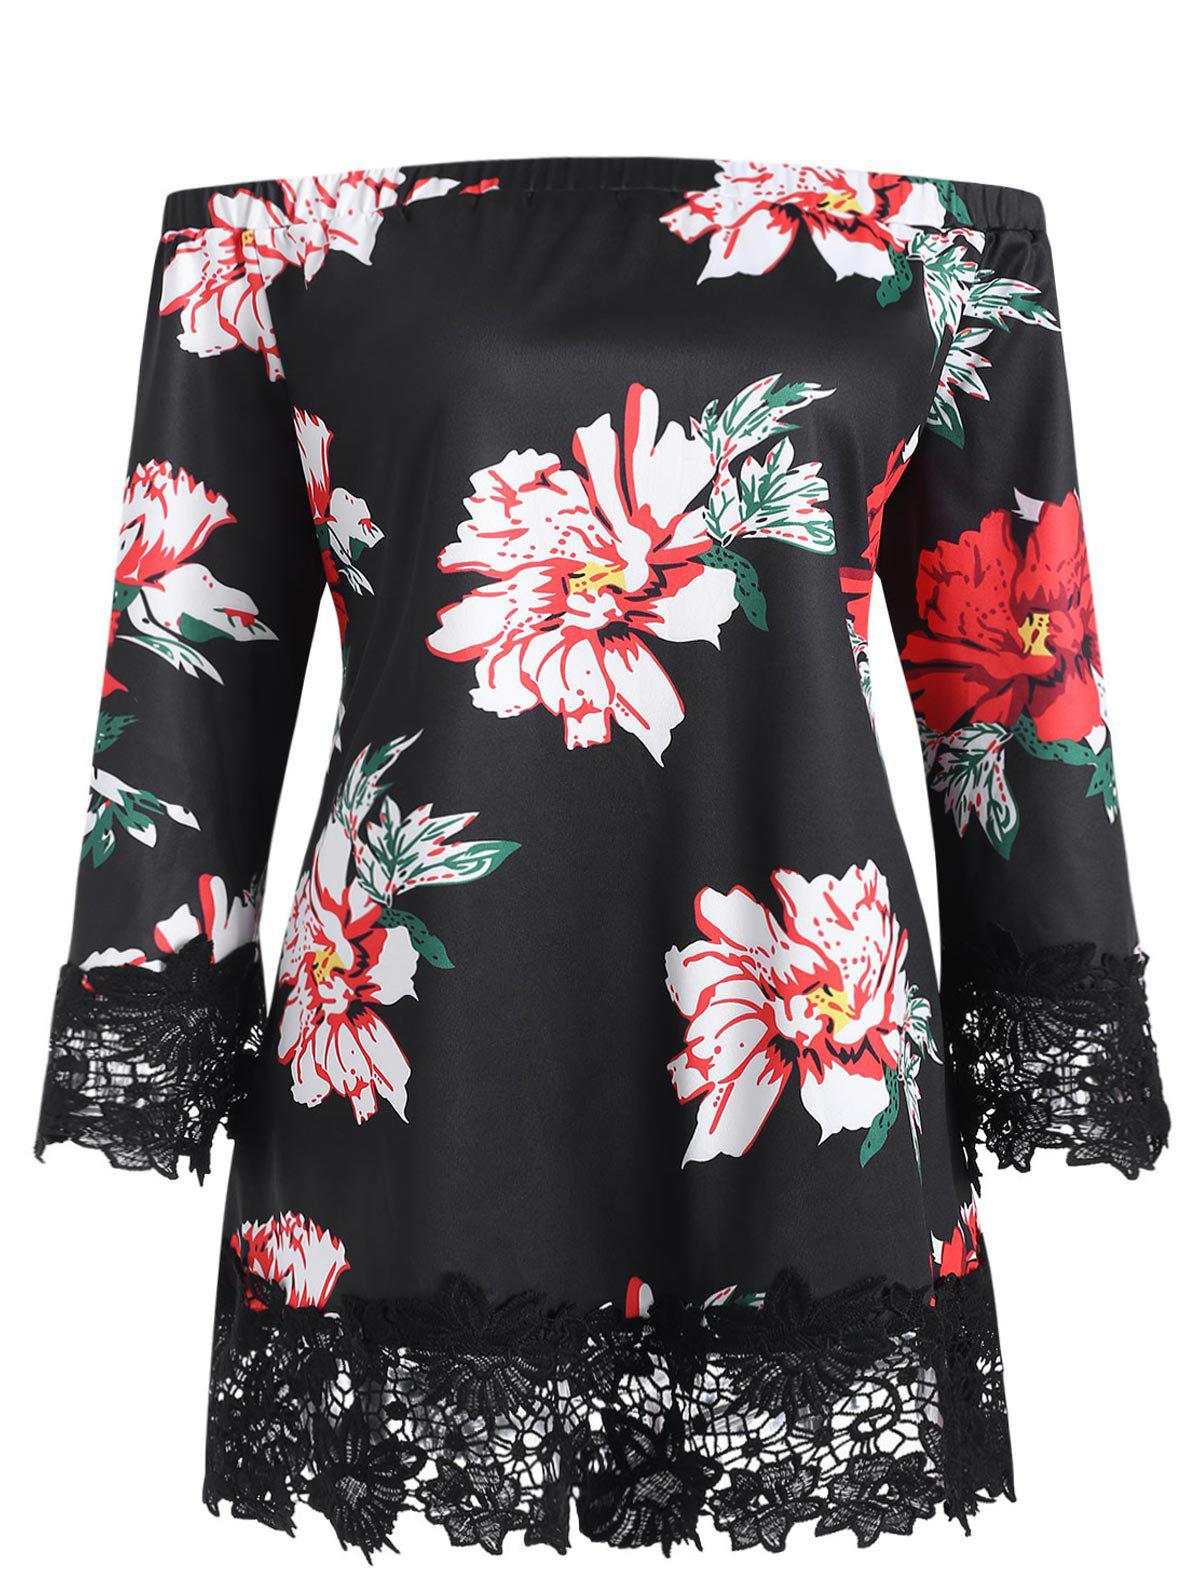 Plus Size Off The Shoulder Floral Print Lace Trim Blouse - BLACK 4X